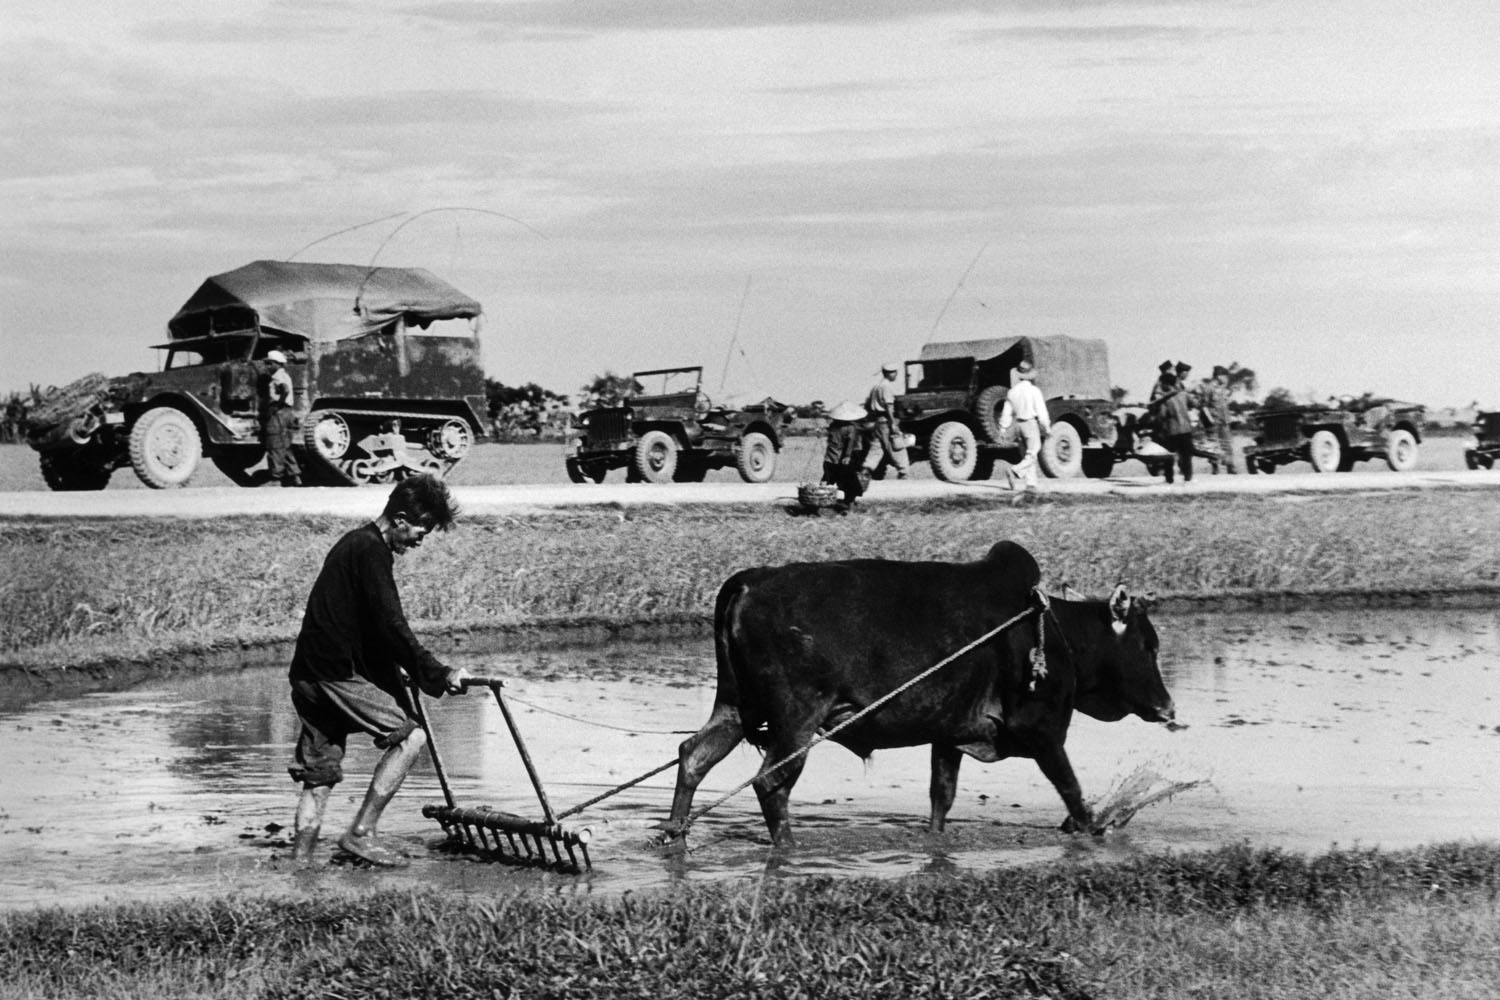 A French military convoy marches past a rice field on its way north towards Doai Tan, Vietnam, May 25, 1954.Robert Capa was killed by a landmine on the afternoon that this photograph is dated while on assignment for LIFE, covering the First Indochina War. The frame was captured on what is likely one of the last rolls of film he ever exposed.